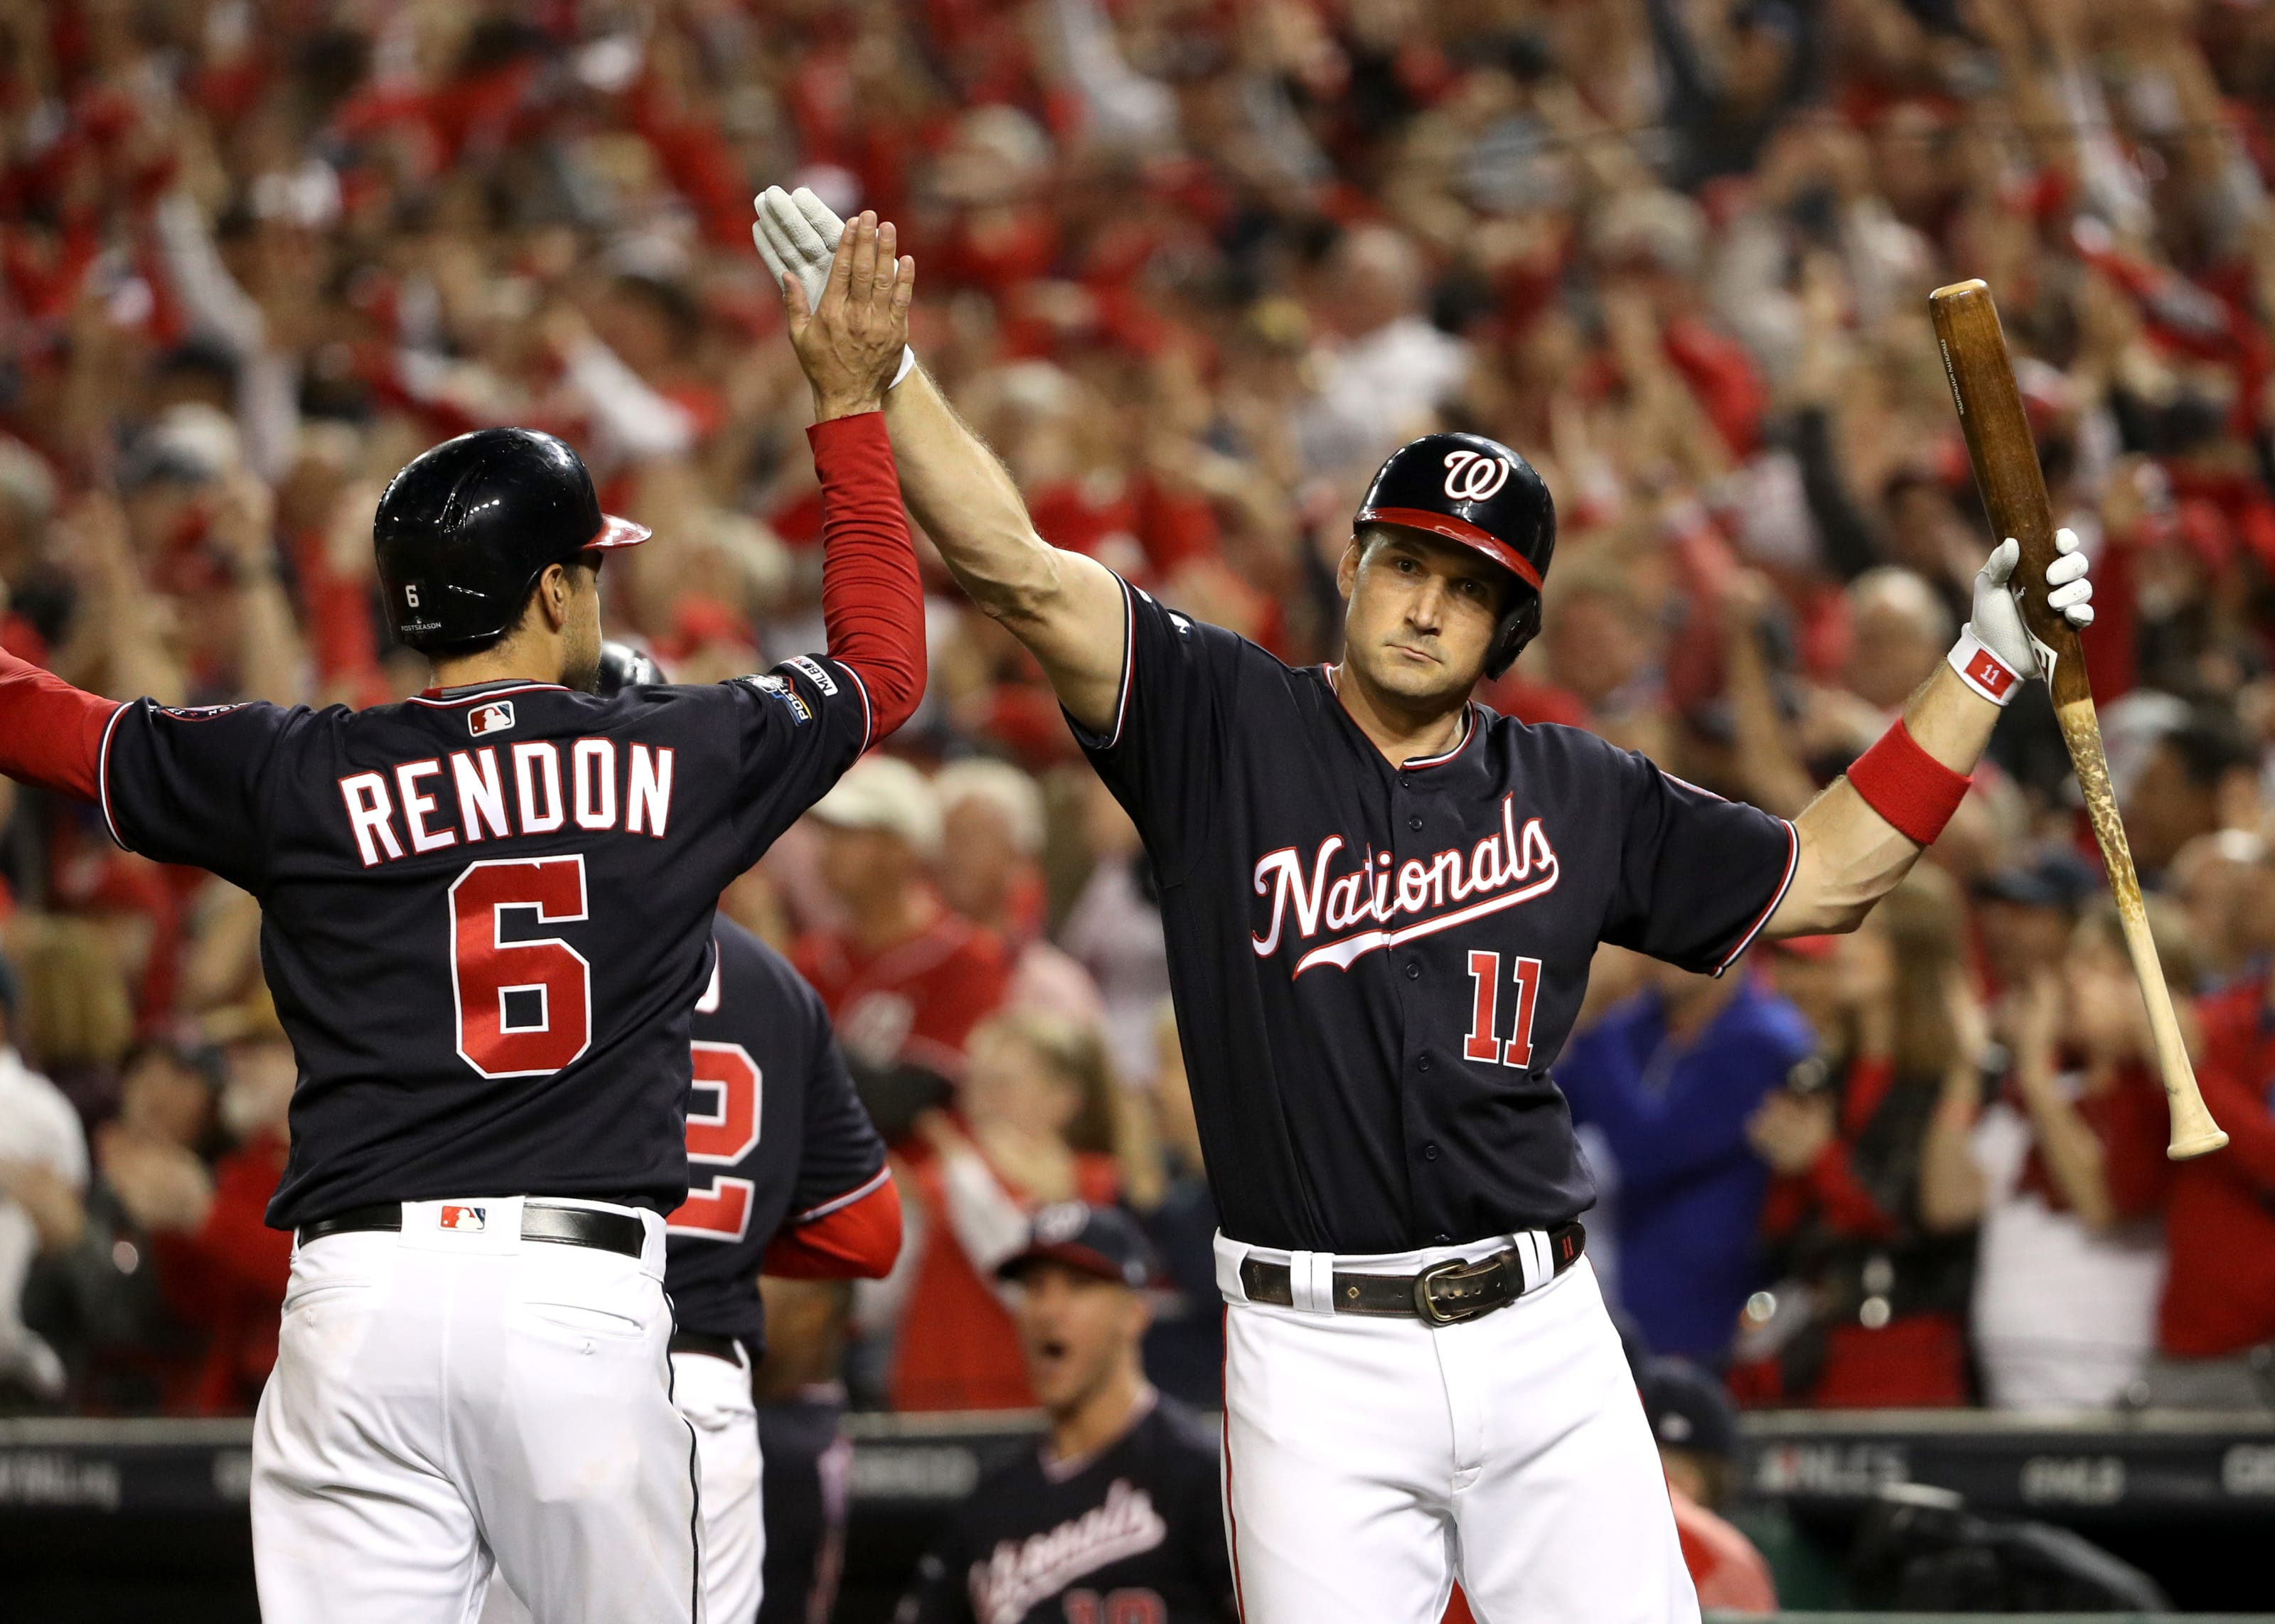 Washington Nationals' Ryan Zimmerman and Anthony Rendon celebrate.